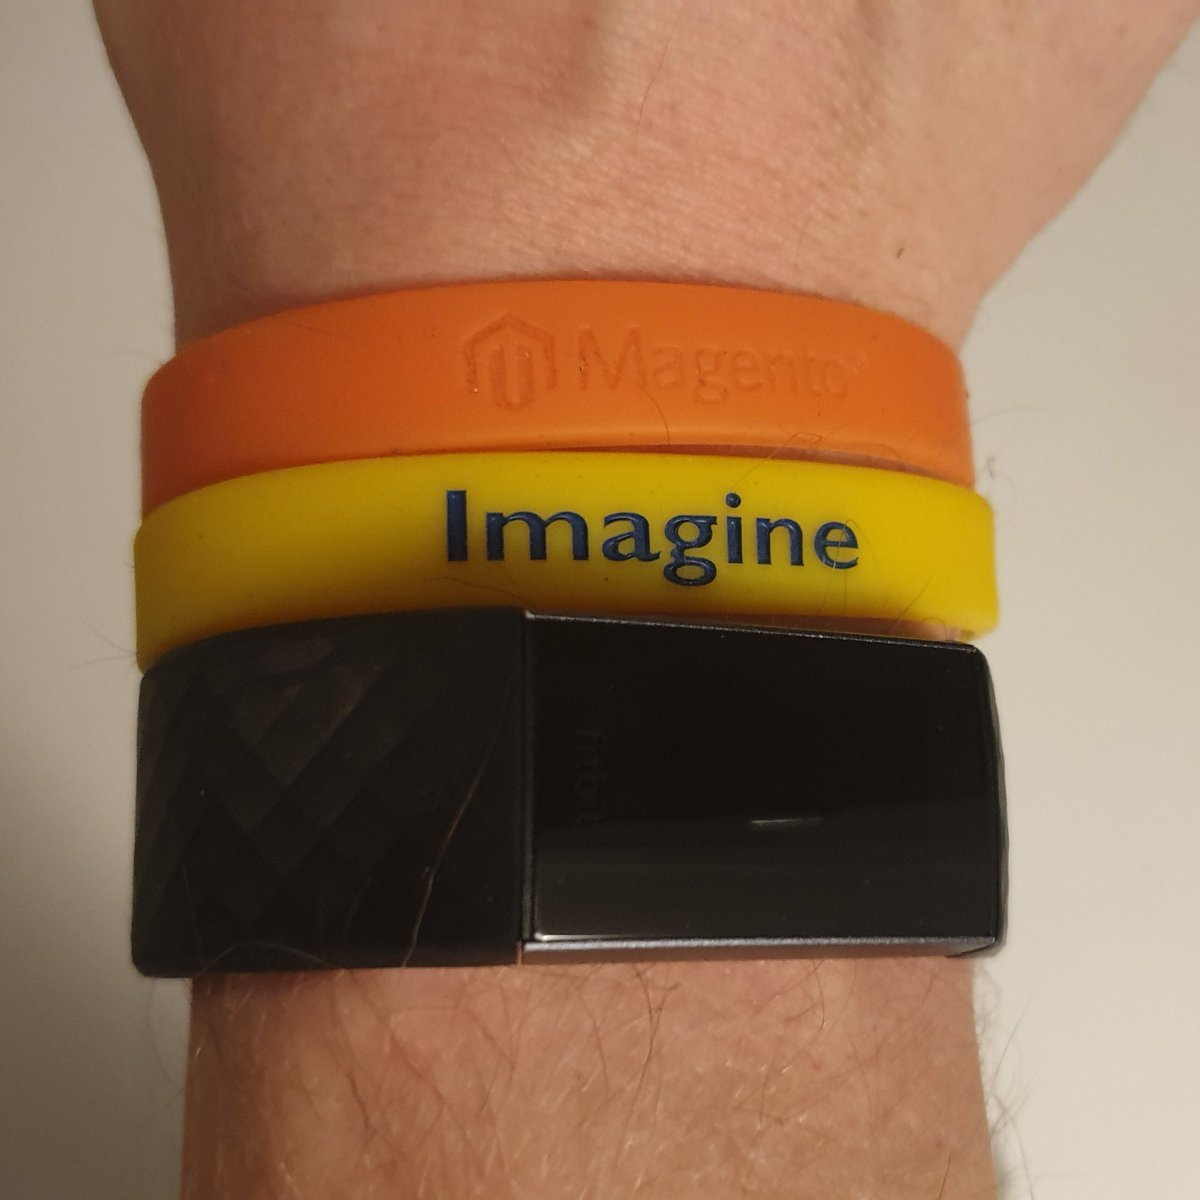 guido: Oh and @BobSchwartz: don't forget to put these on for your #RoadToImagine #MagentoImagine https://t.co/fBZ3u0voVB